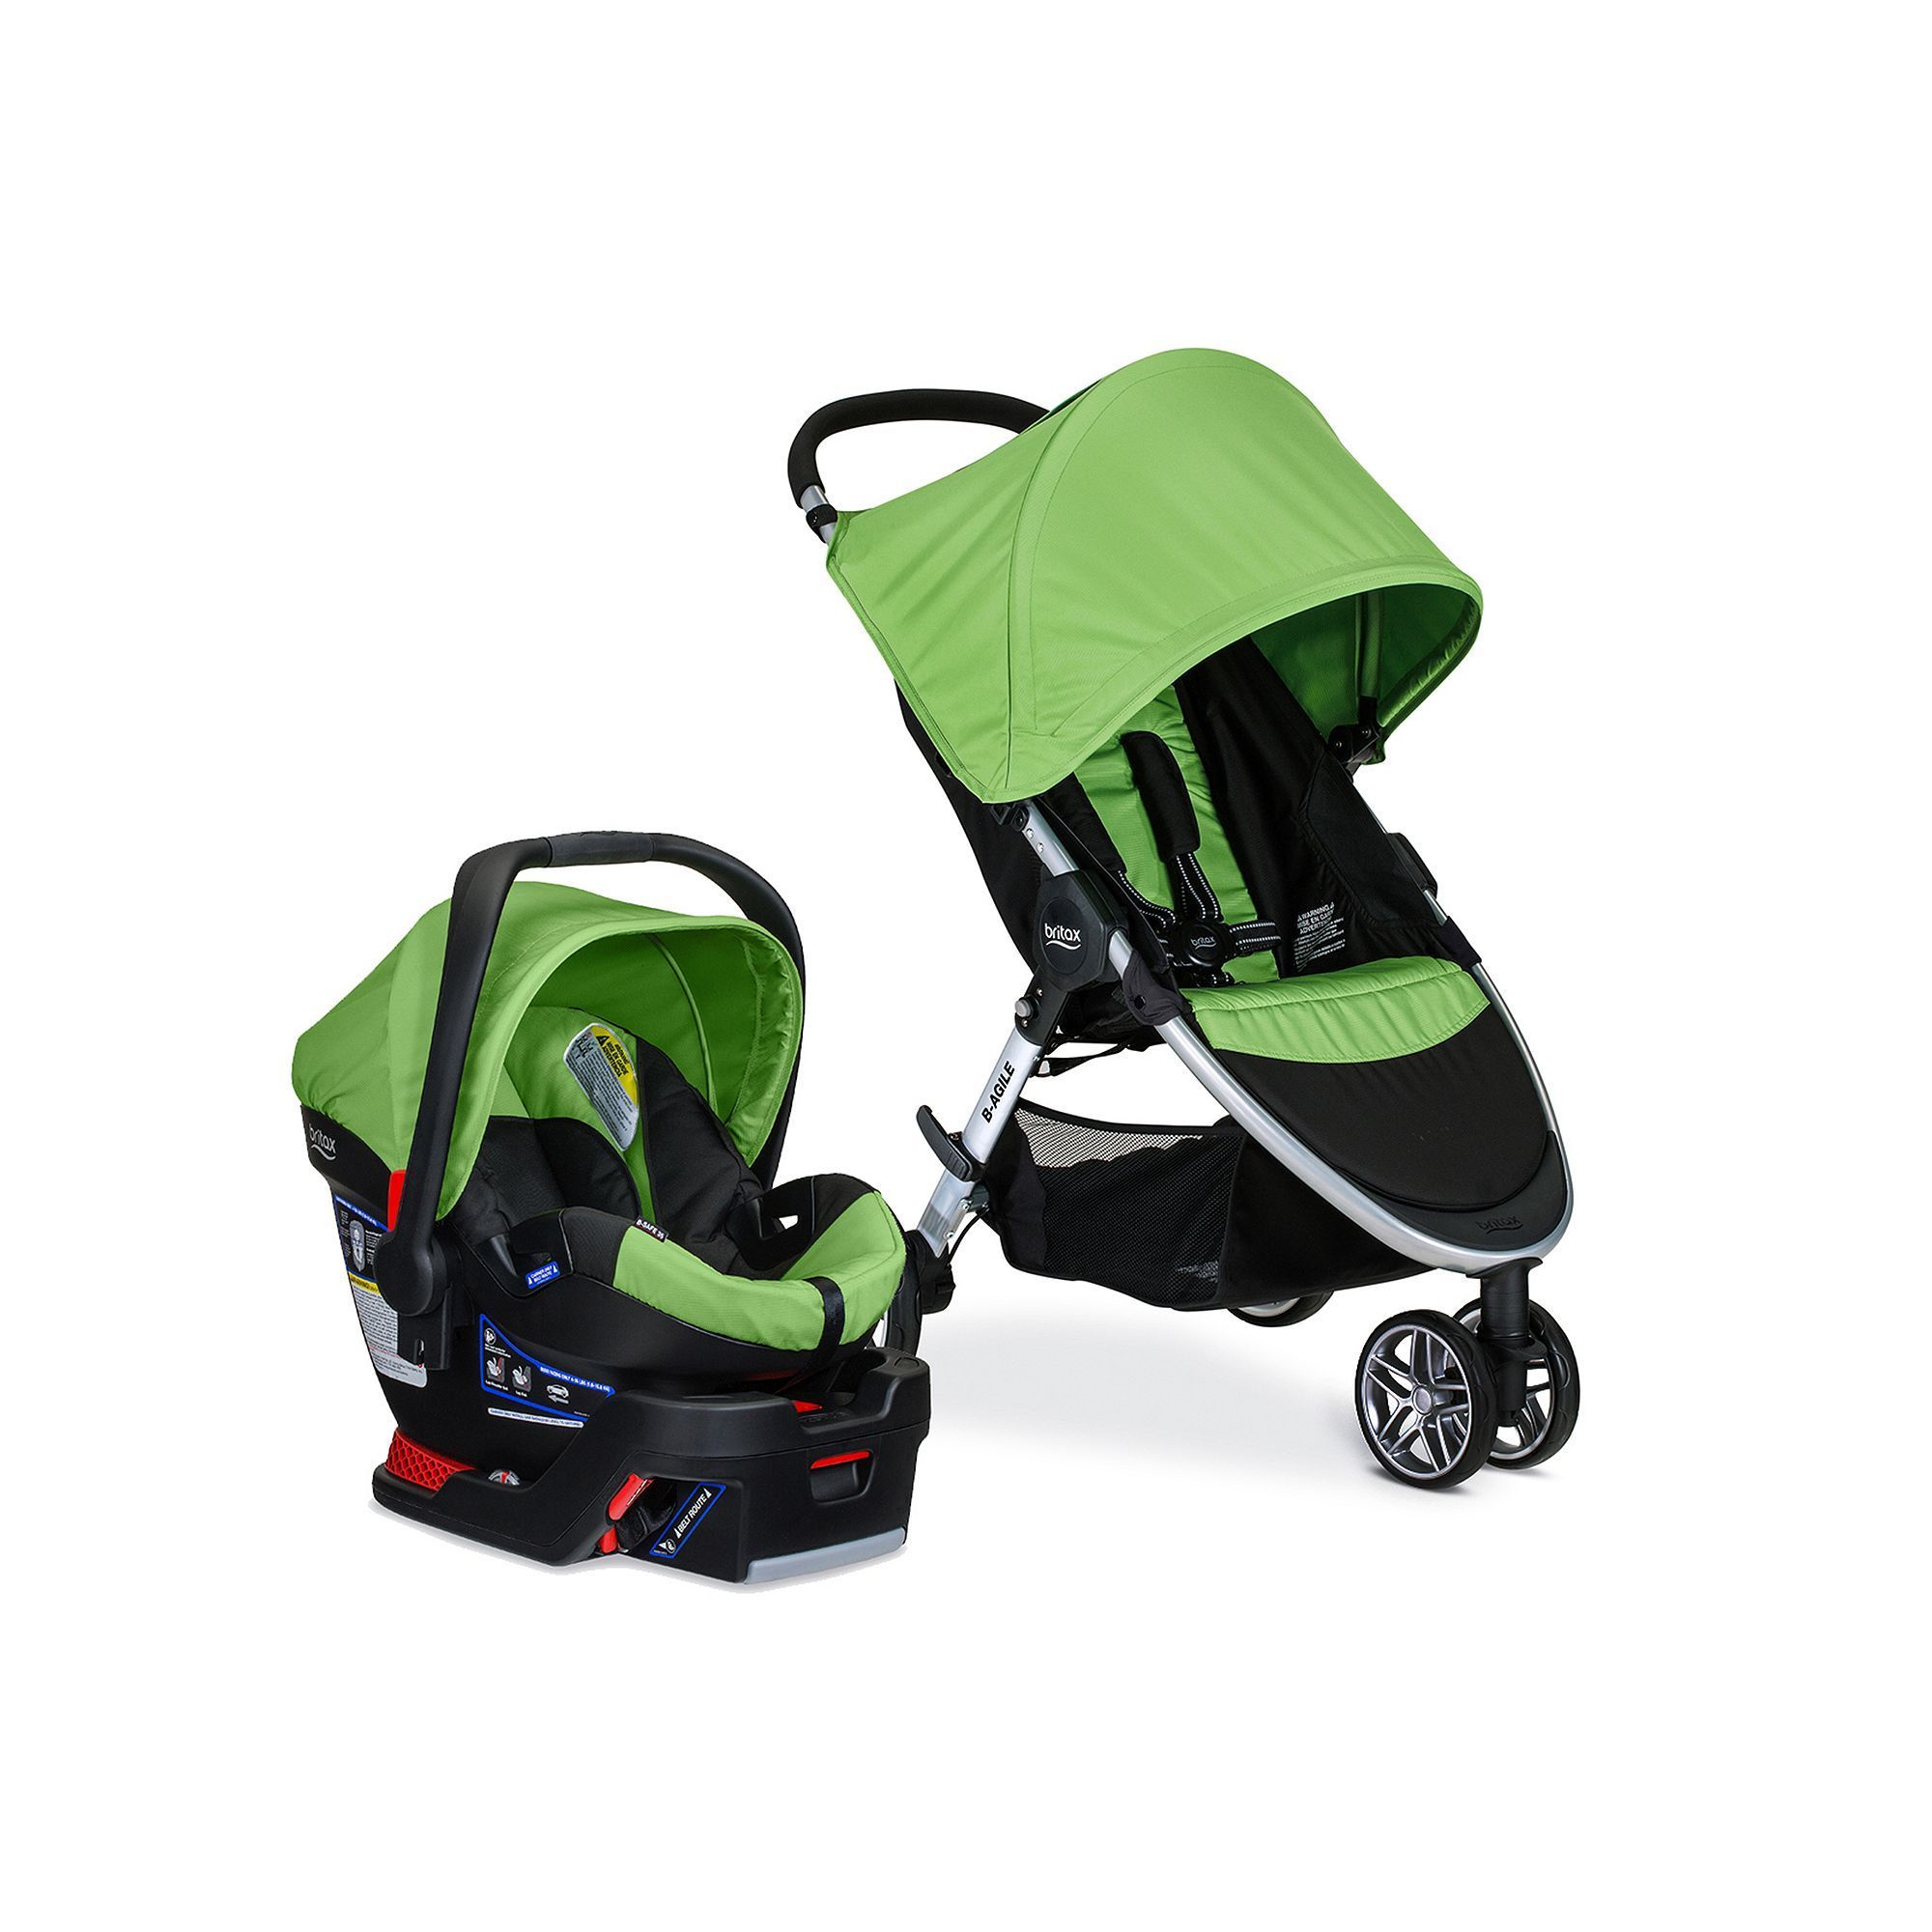 Britax Steecraft Agile Plus Travel System Stroller